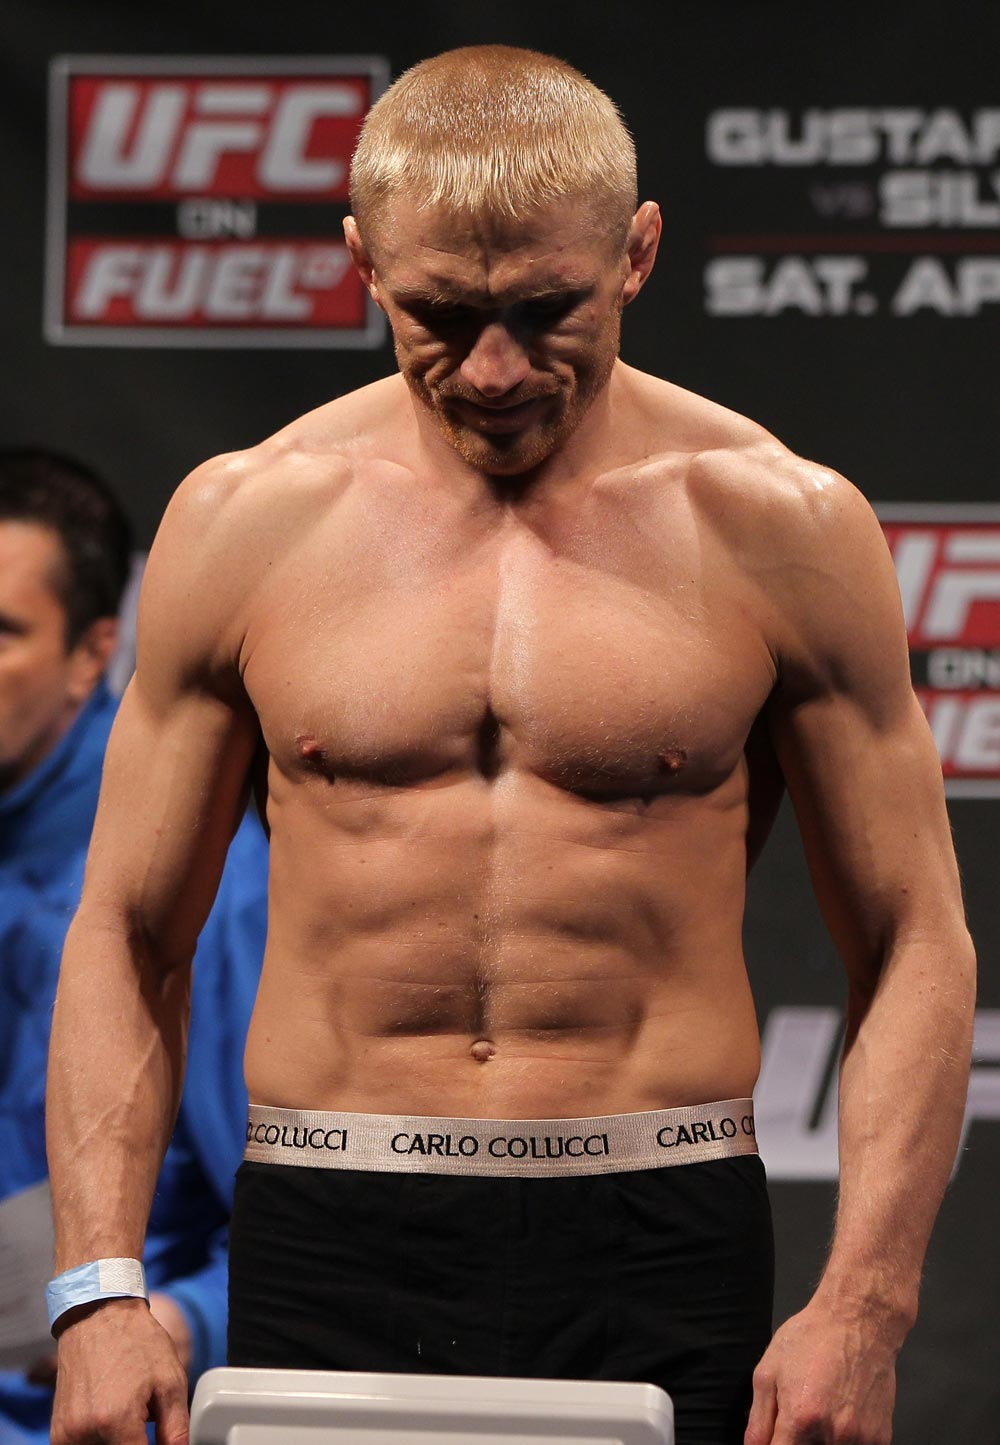 STOCKHOLM, SWEDEN - APRIL 13:  Dennis Siver of Germany weighs in during the official UFC on Fuel TV weigh in event at Ericsson Globe on April 13, 2012 in Stockholm, Sweden.  (Photo by Josh Hedges/Zuffa LLC/Zuffa LLC via Getty Images)